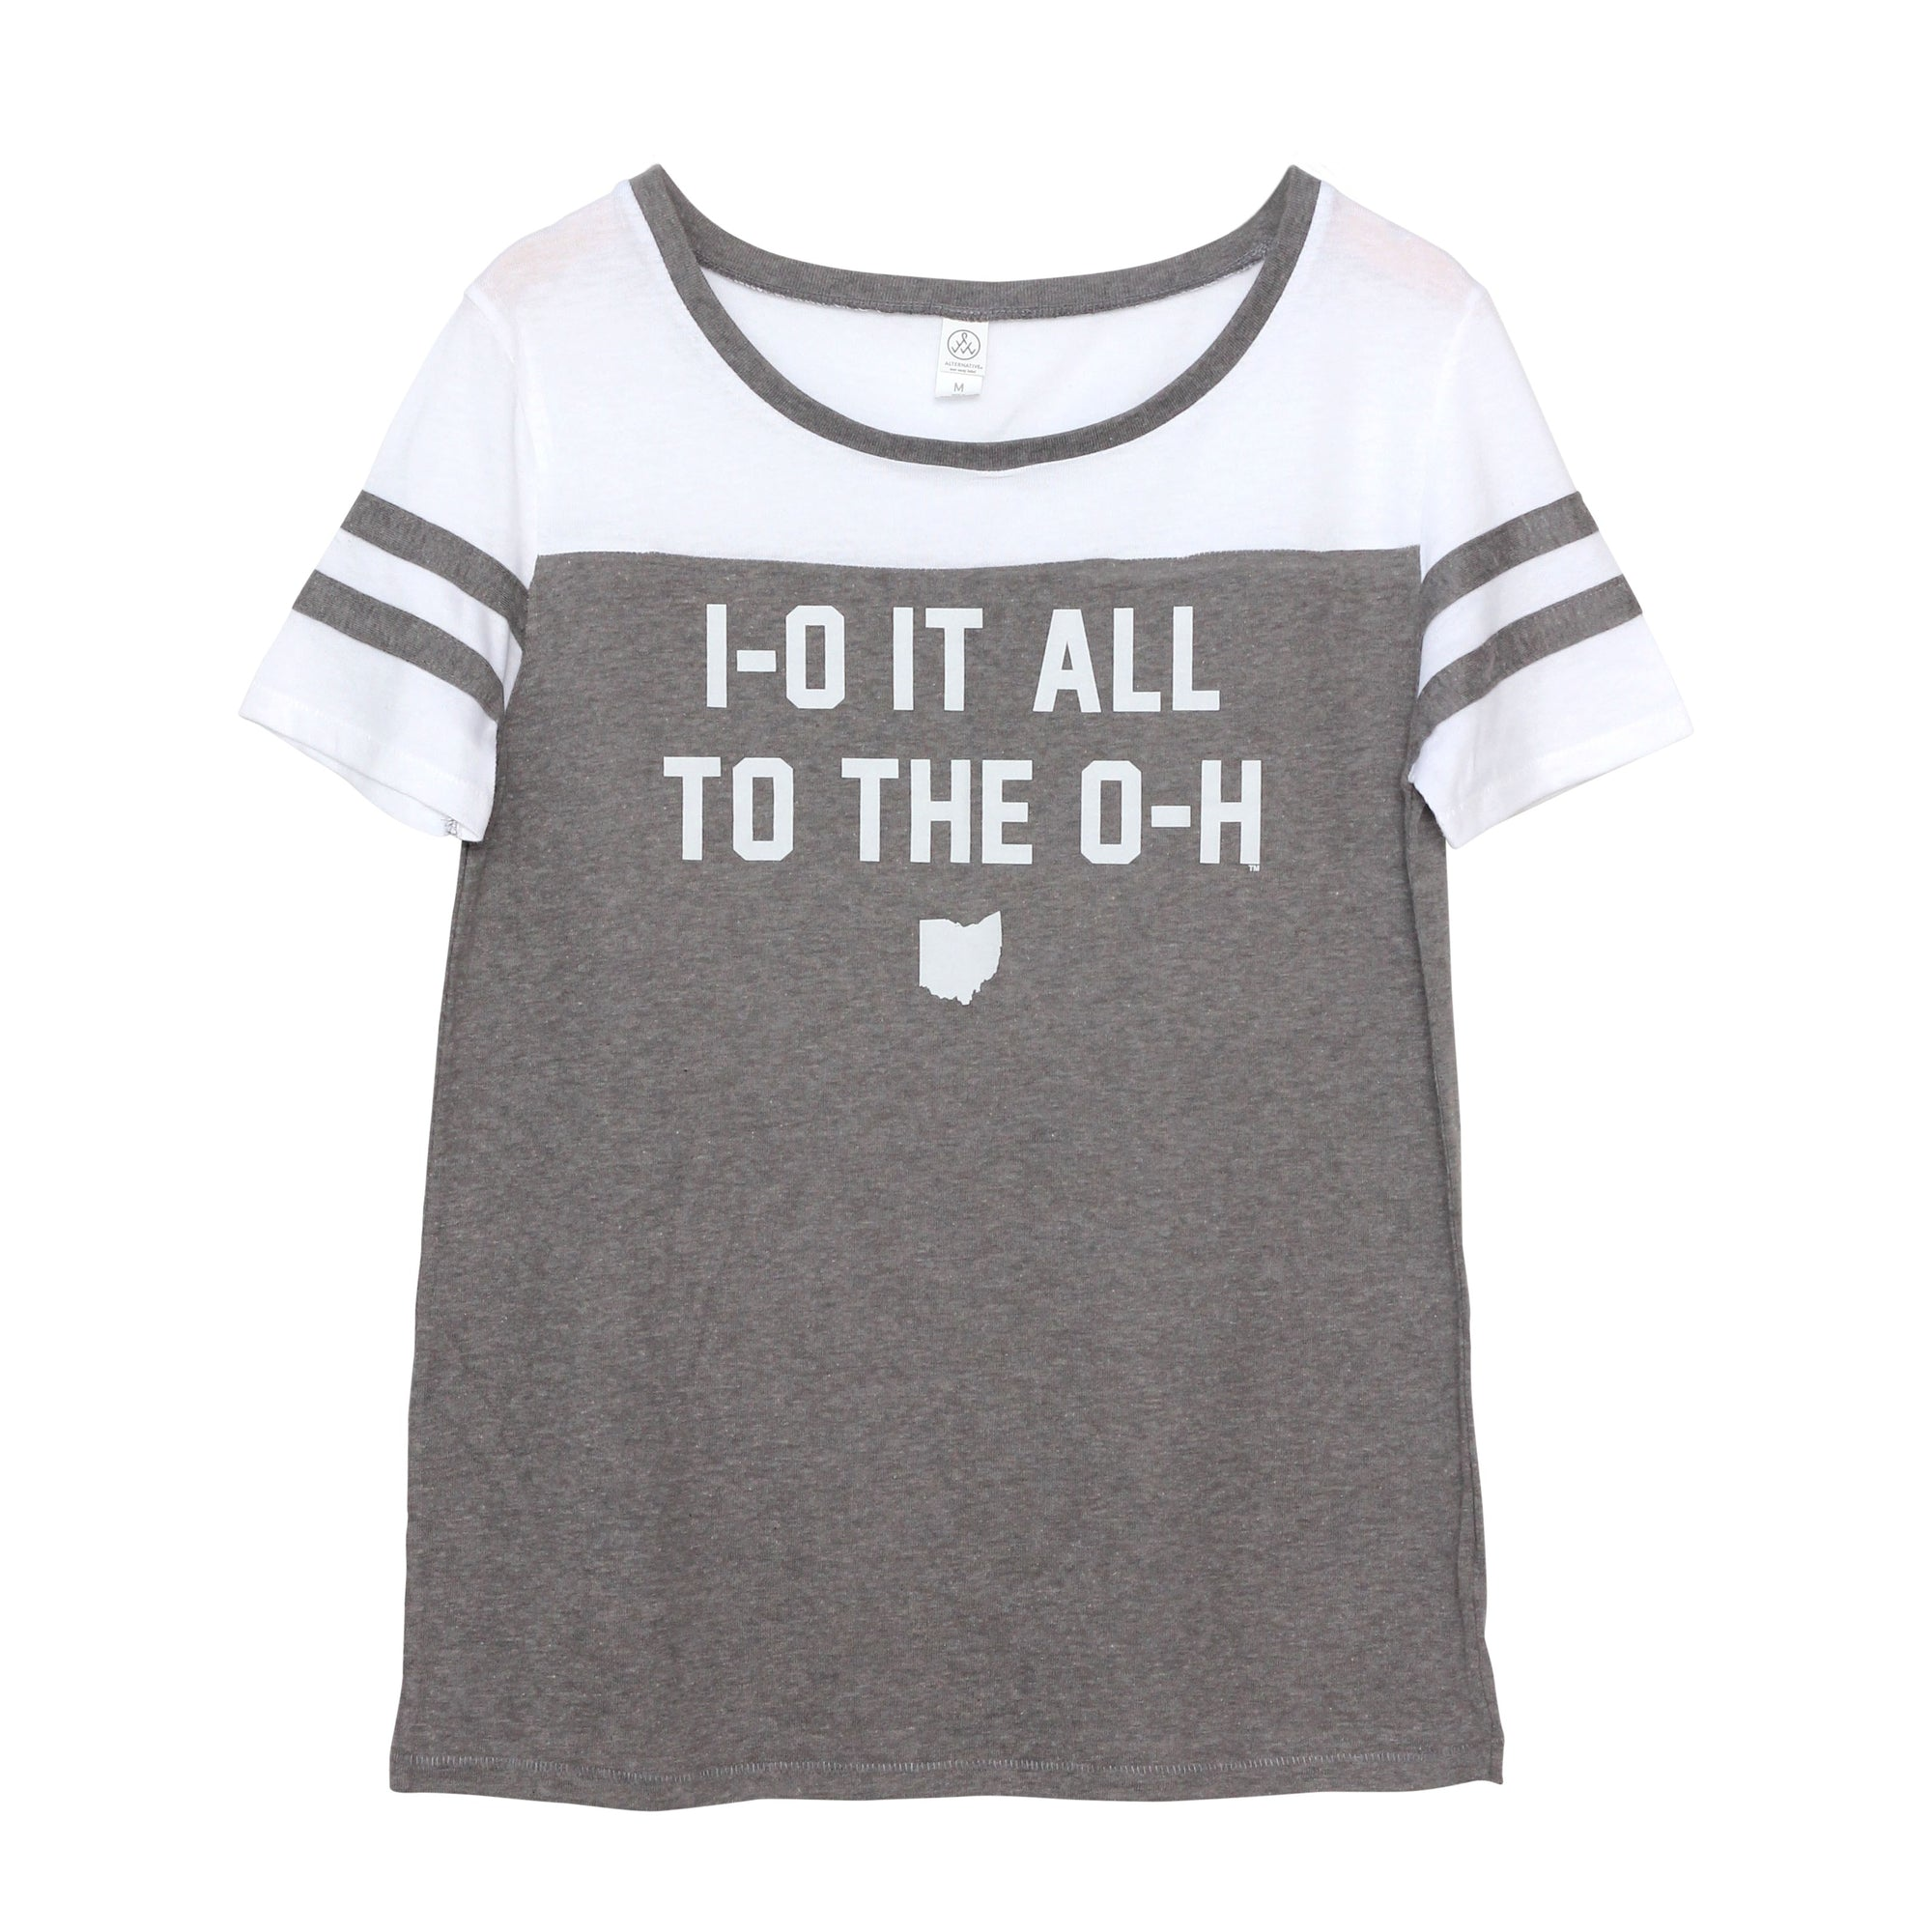 Io It All To The Oh Women's Jersey Stadium Tee - Clothe Ohio - Soft Ohio Shirts